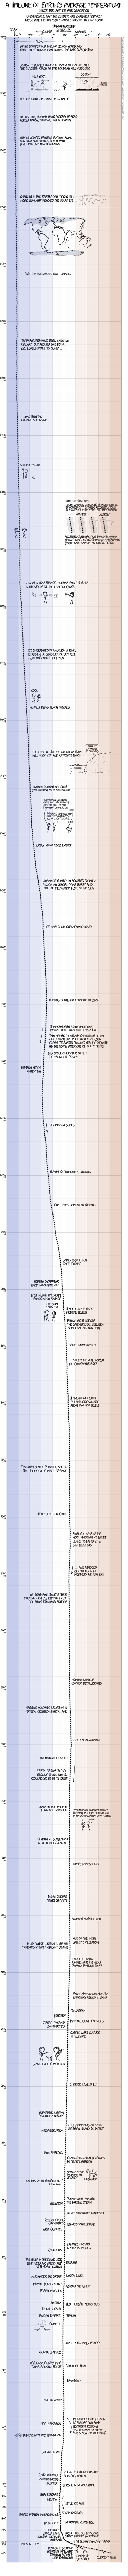 earth_temperature_timeline-2